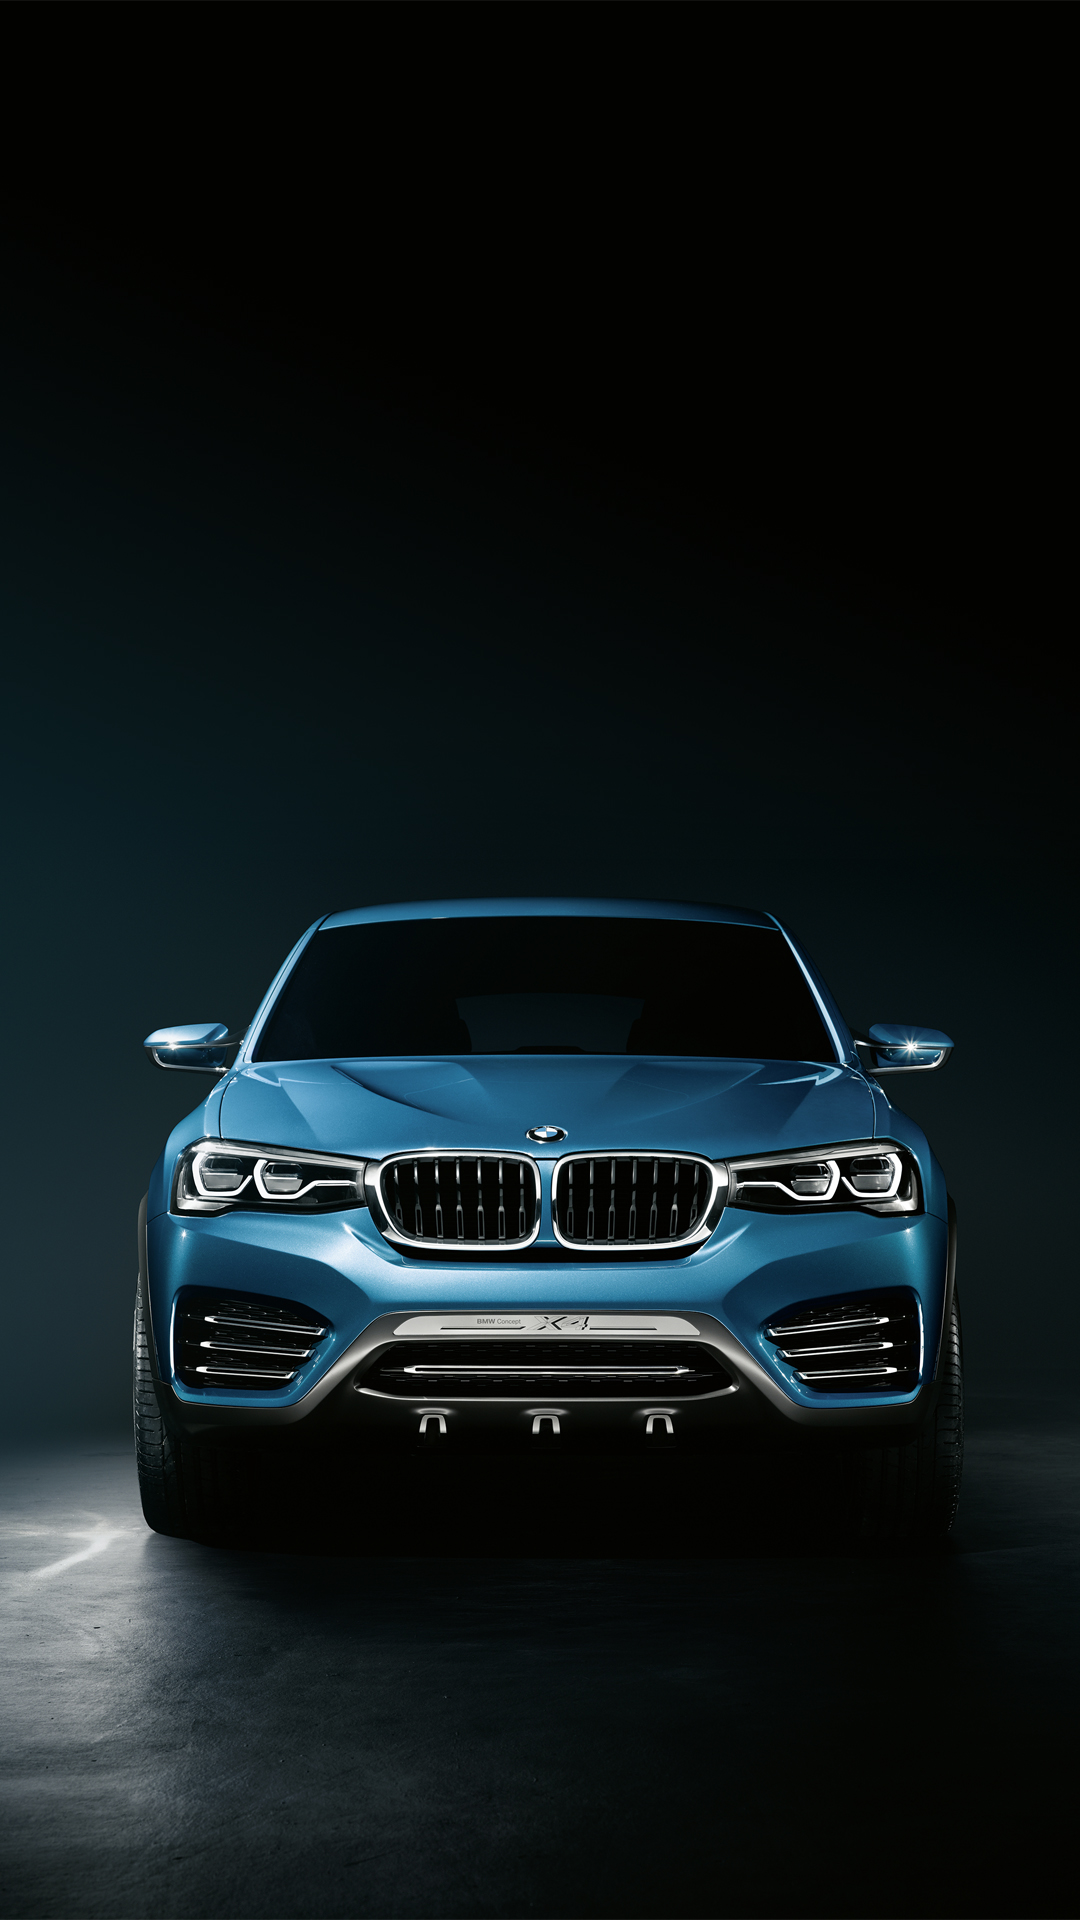 BMW Concept X4 - Best htc one wallpapers, free and easy to ...